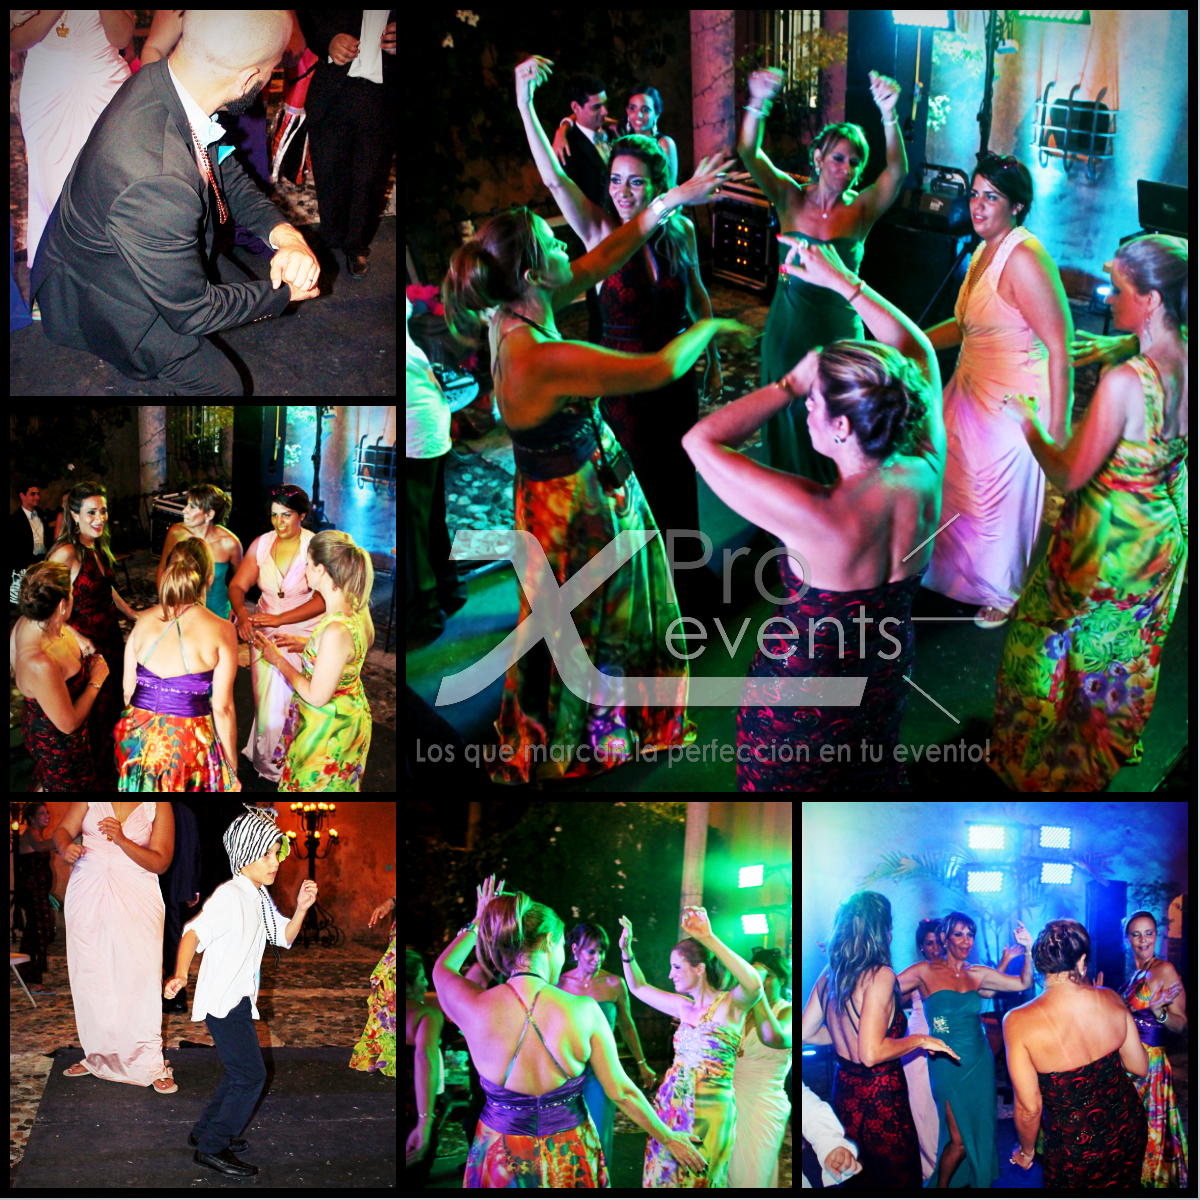 www.Xproevents.com - Jan Mario & Karla Collage 4.jpg